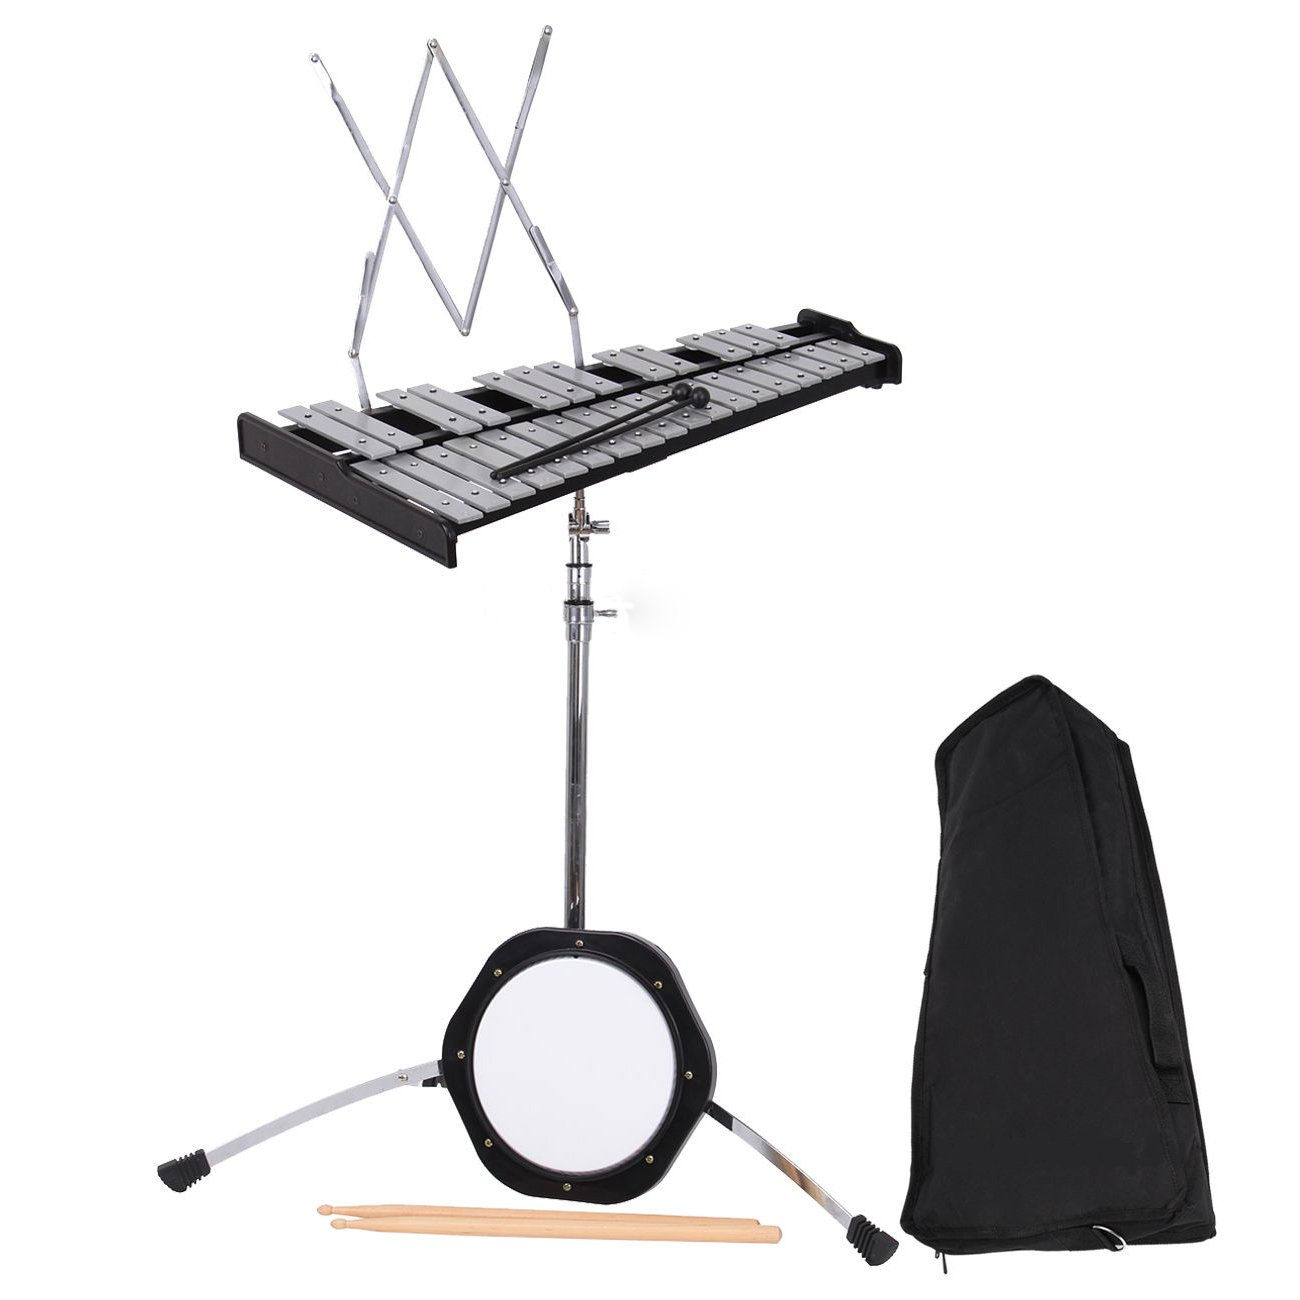 Ridgeyard 30 Educational Glockenspiel Bell Kit Hand Percussion Musical Instrument w/Practice Pad, Mallets, Sticks, Stand and Bag Best Christmas Gift for Kids Children